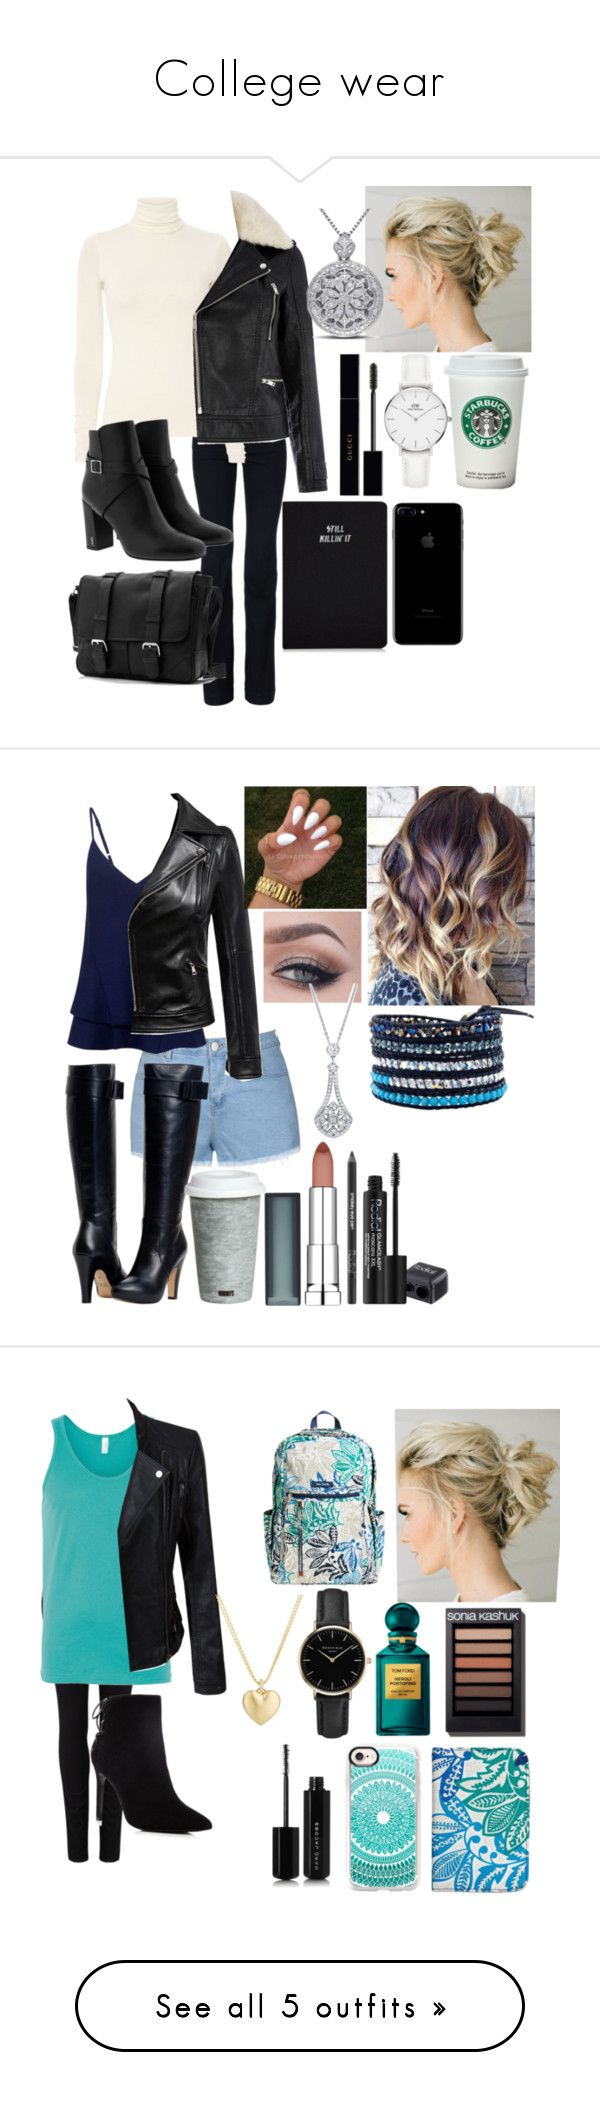 """College wear"" by raindanger-coffee ❤ liked on Polyvore featuring Daniel Wellington, STELLA McCARTNEY, Yves Saint Laurent, Warehouse, Miadora, Gucci, Ally Fashion, Markus Lupfer, Chicnova Fashion and Rodial"